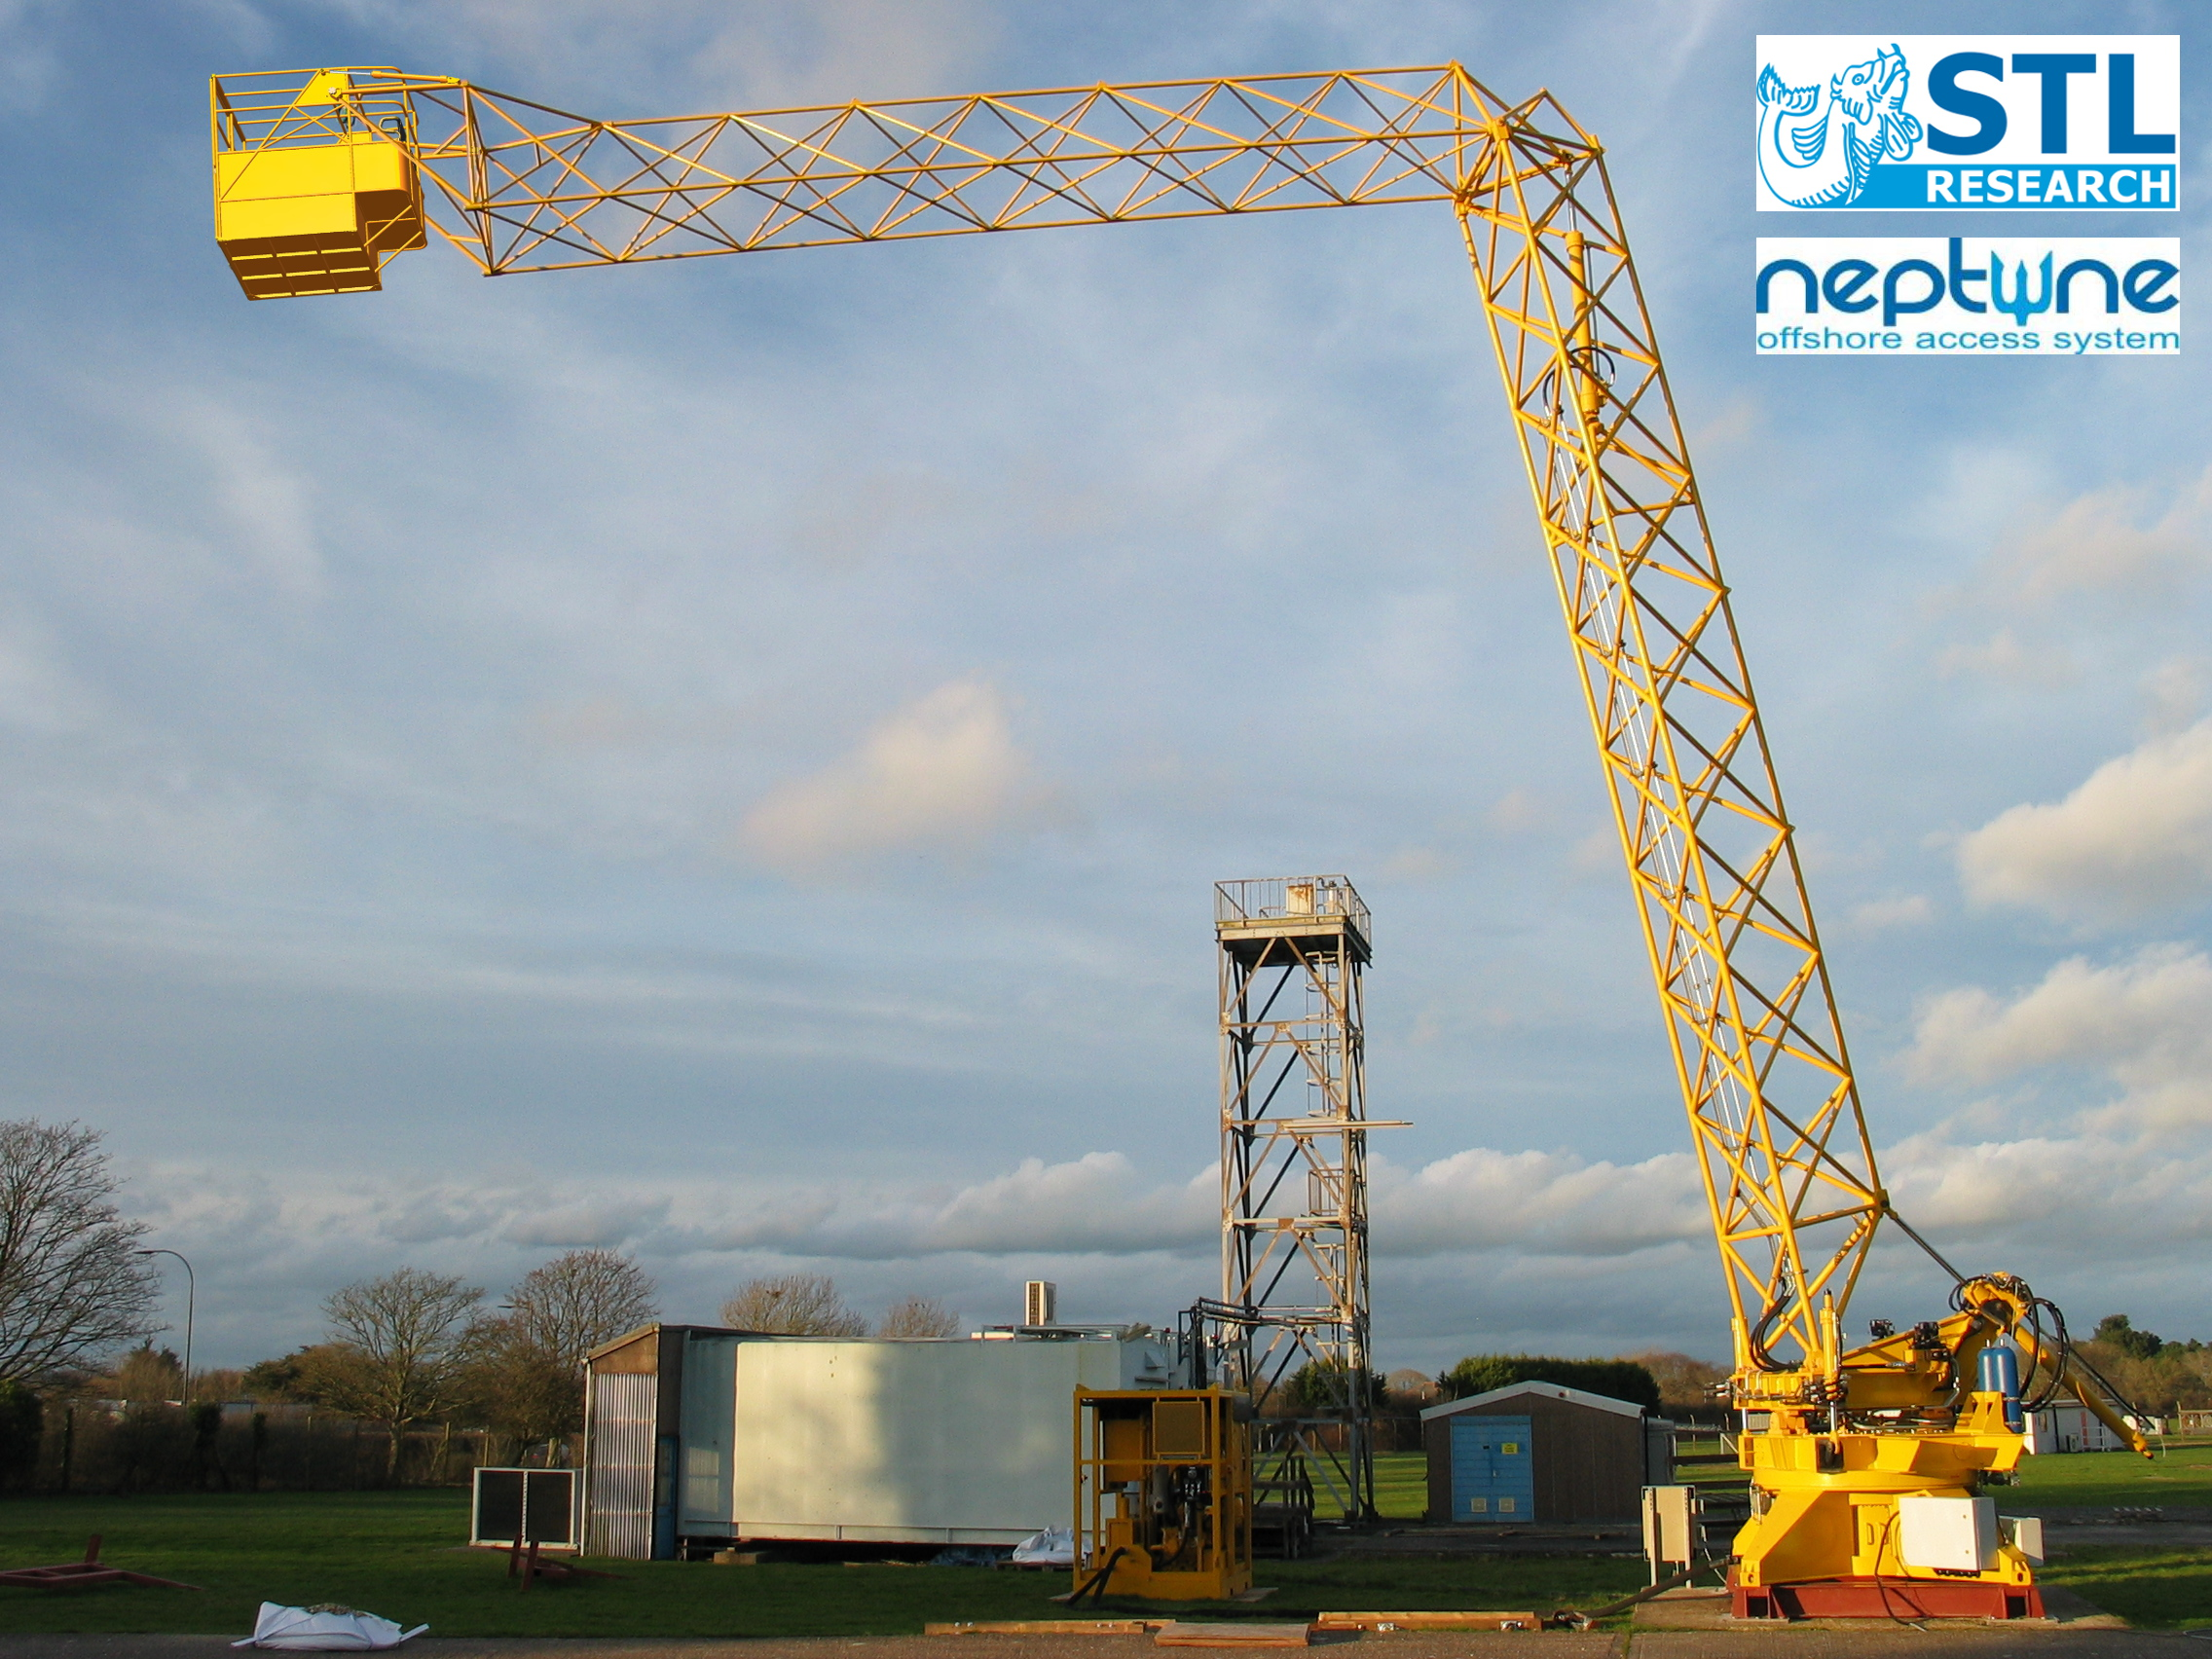 Neptune Offshore Access System undergoing land based testing.